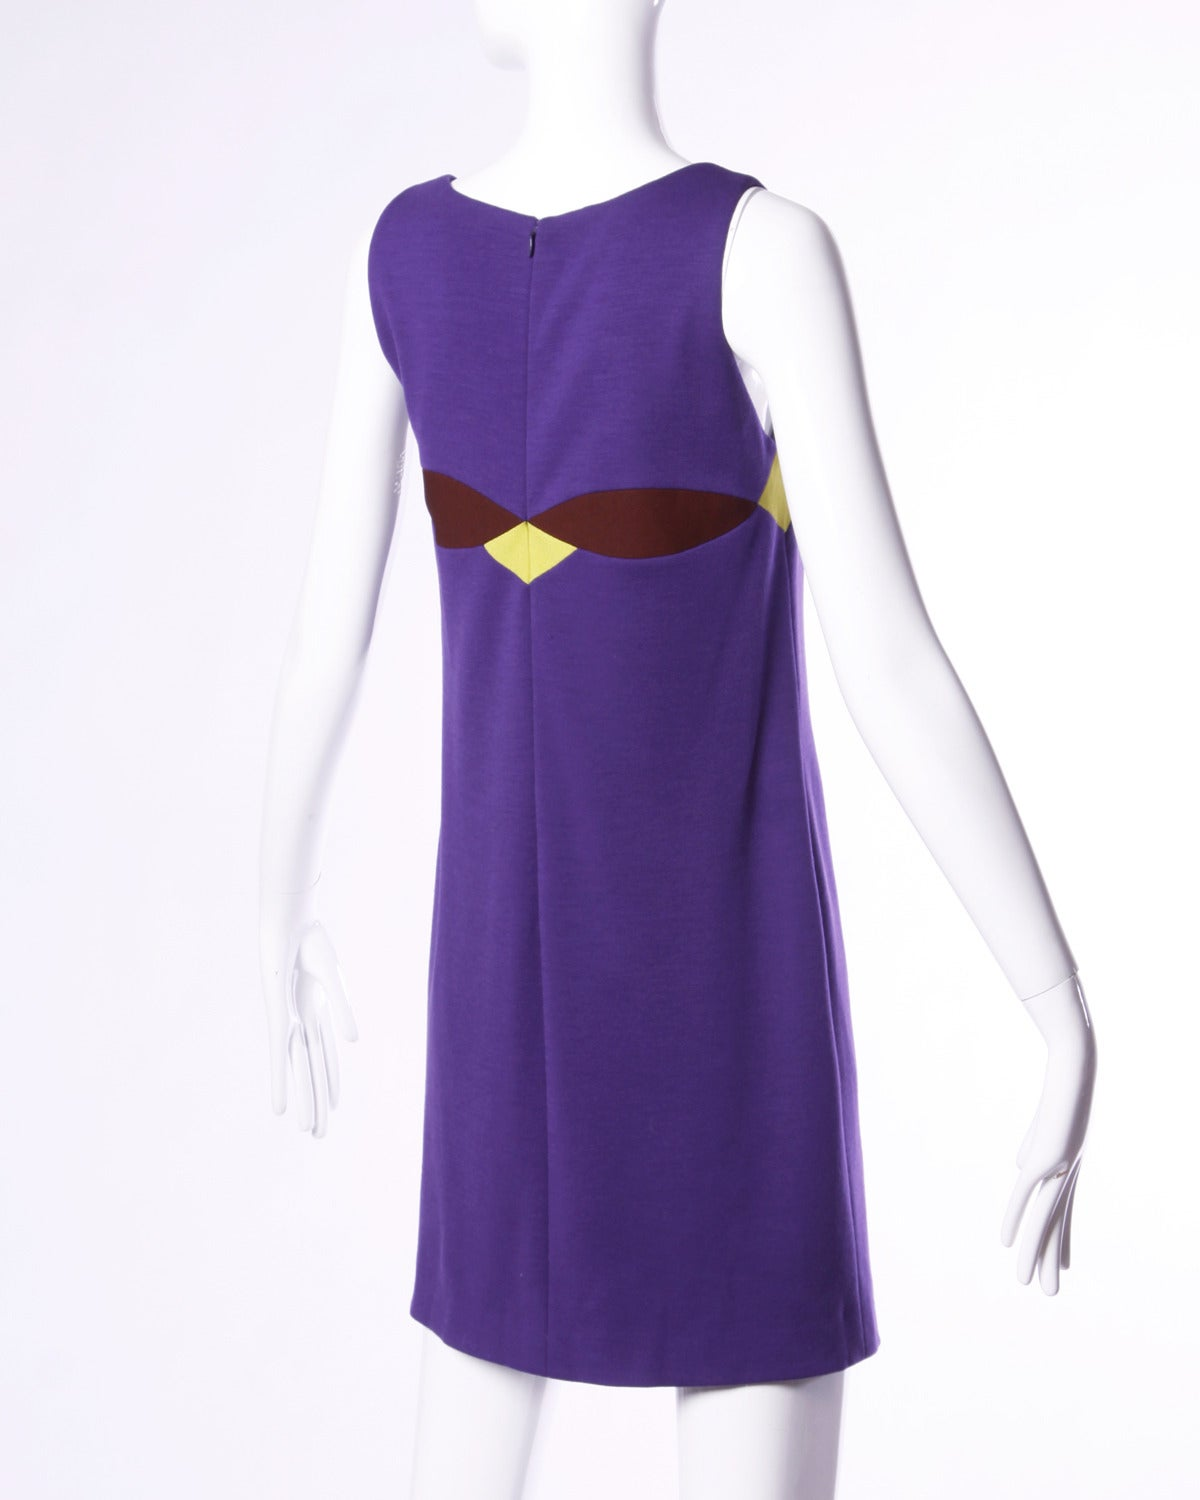 Gianni Versace Couture Vintage 1990s 90s Color Block Wool Shift Dress In Excellent Condition For Sale In Sparks, NV